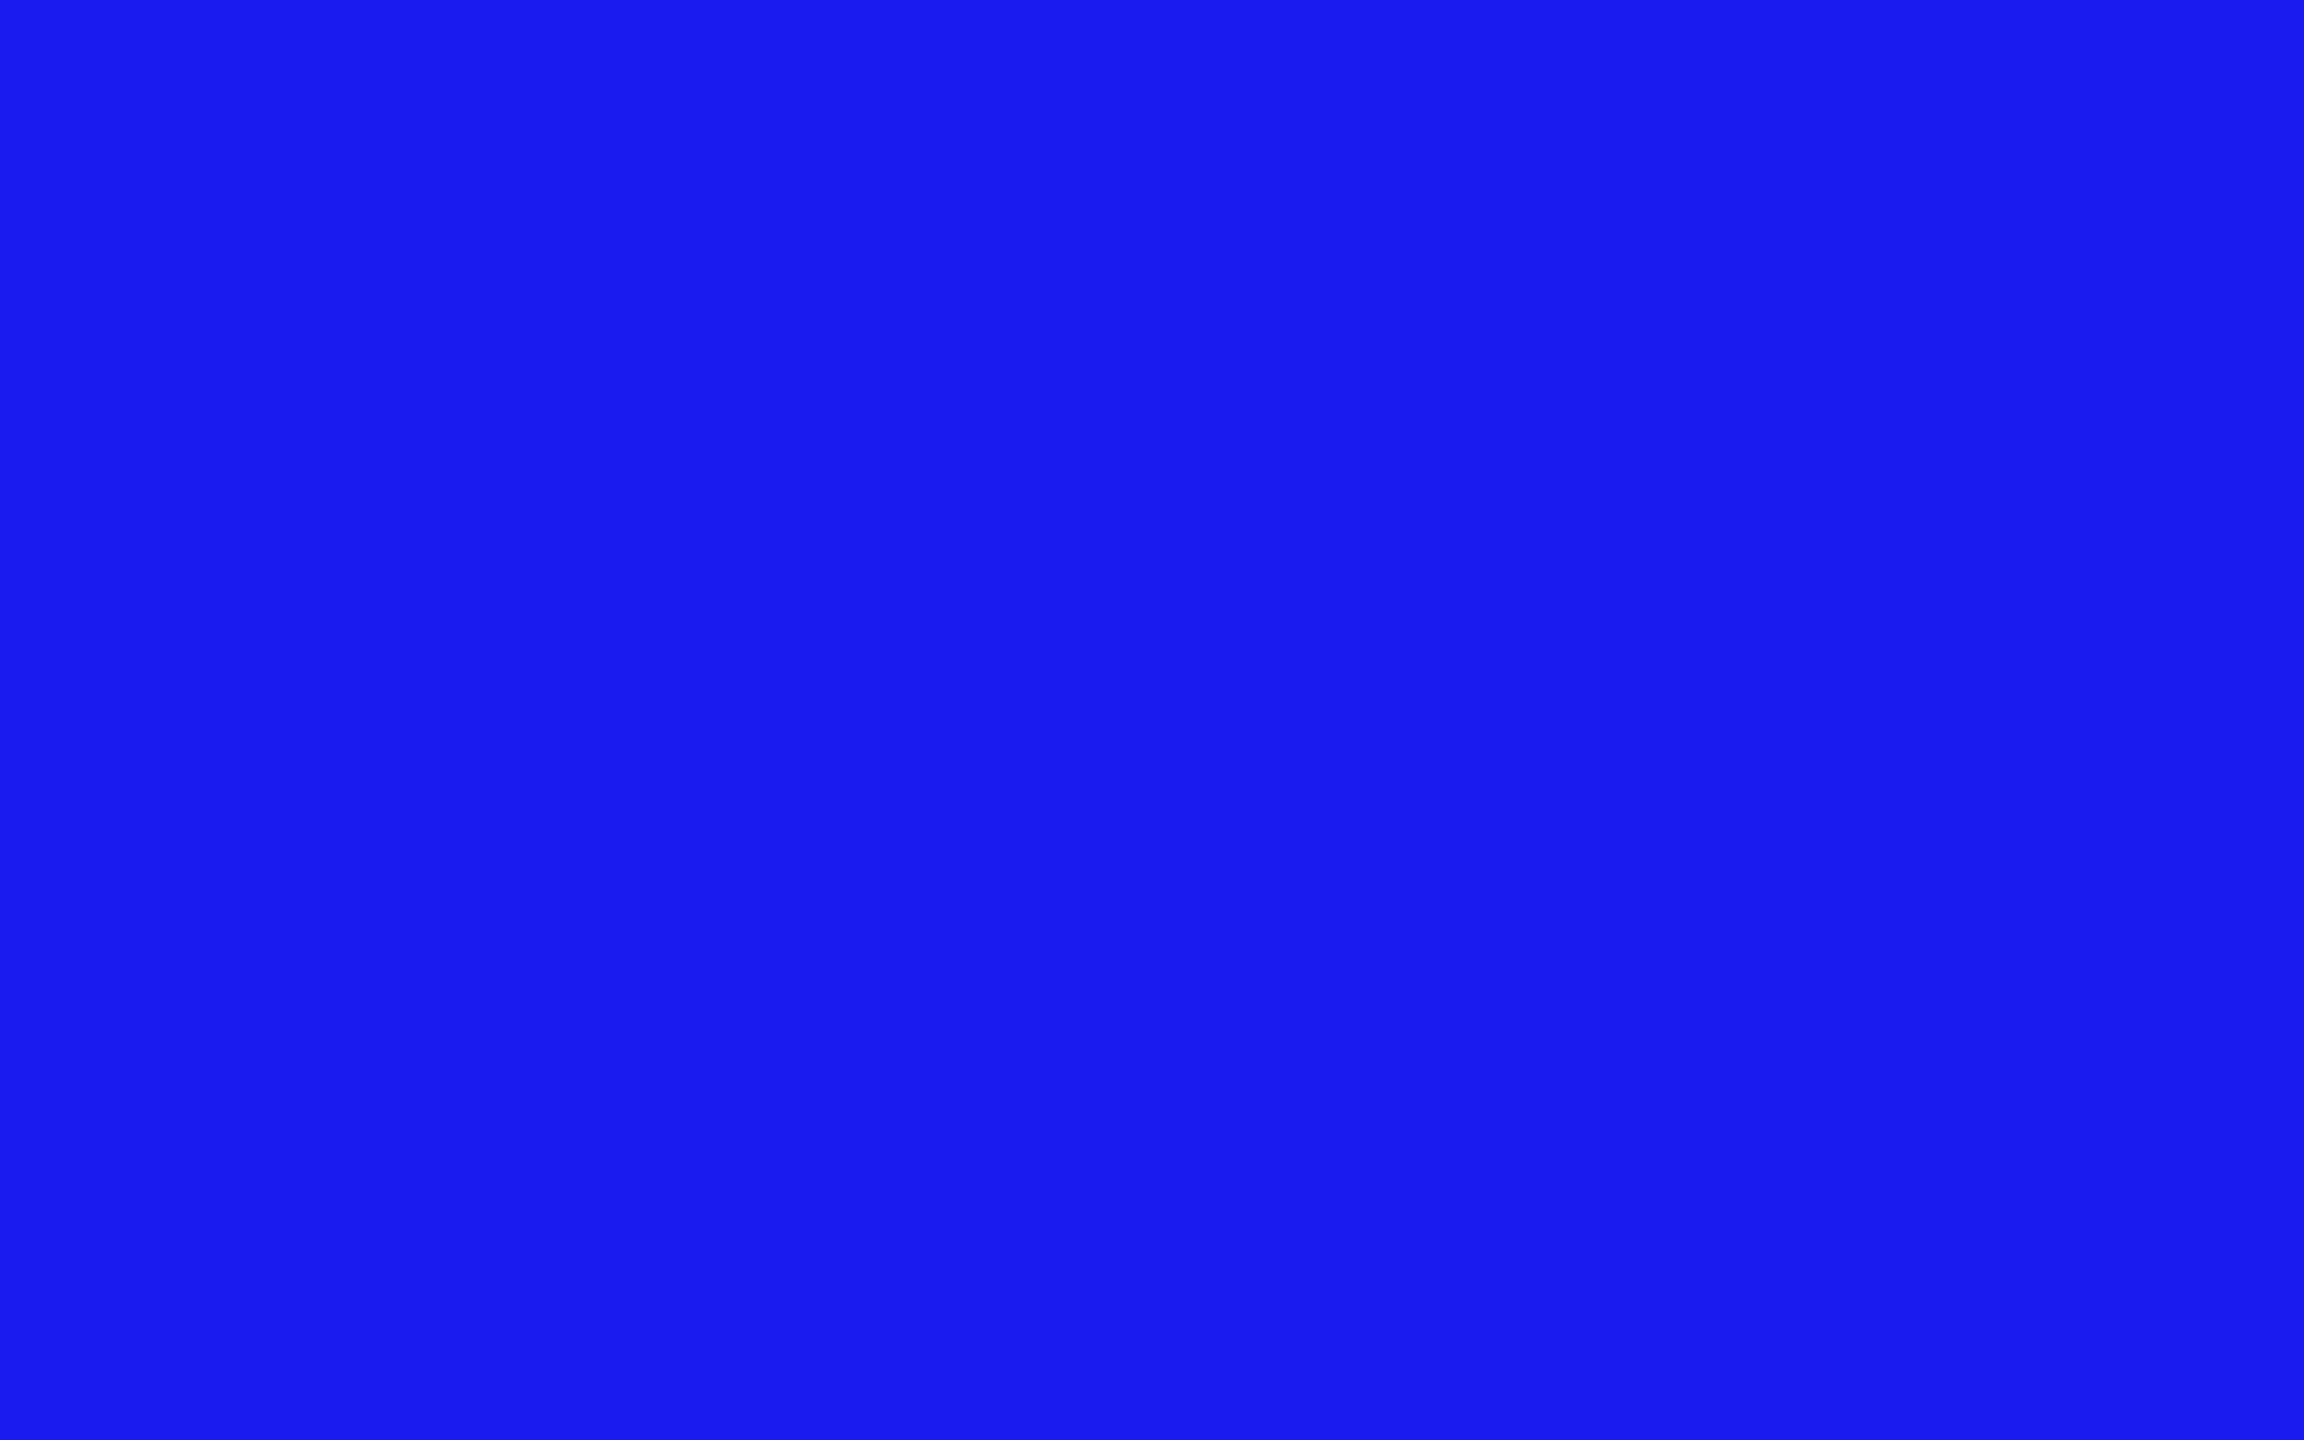 2304x1440 Bluebonnet Solid Color Background